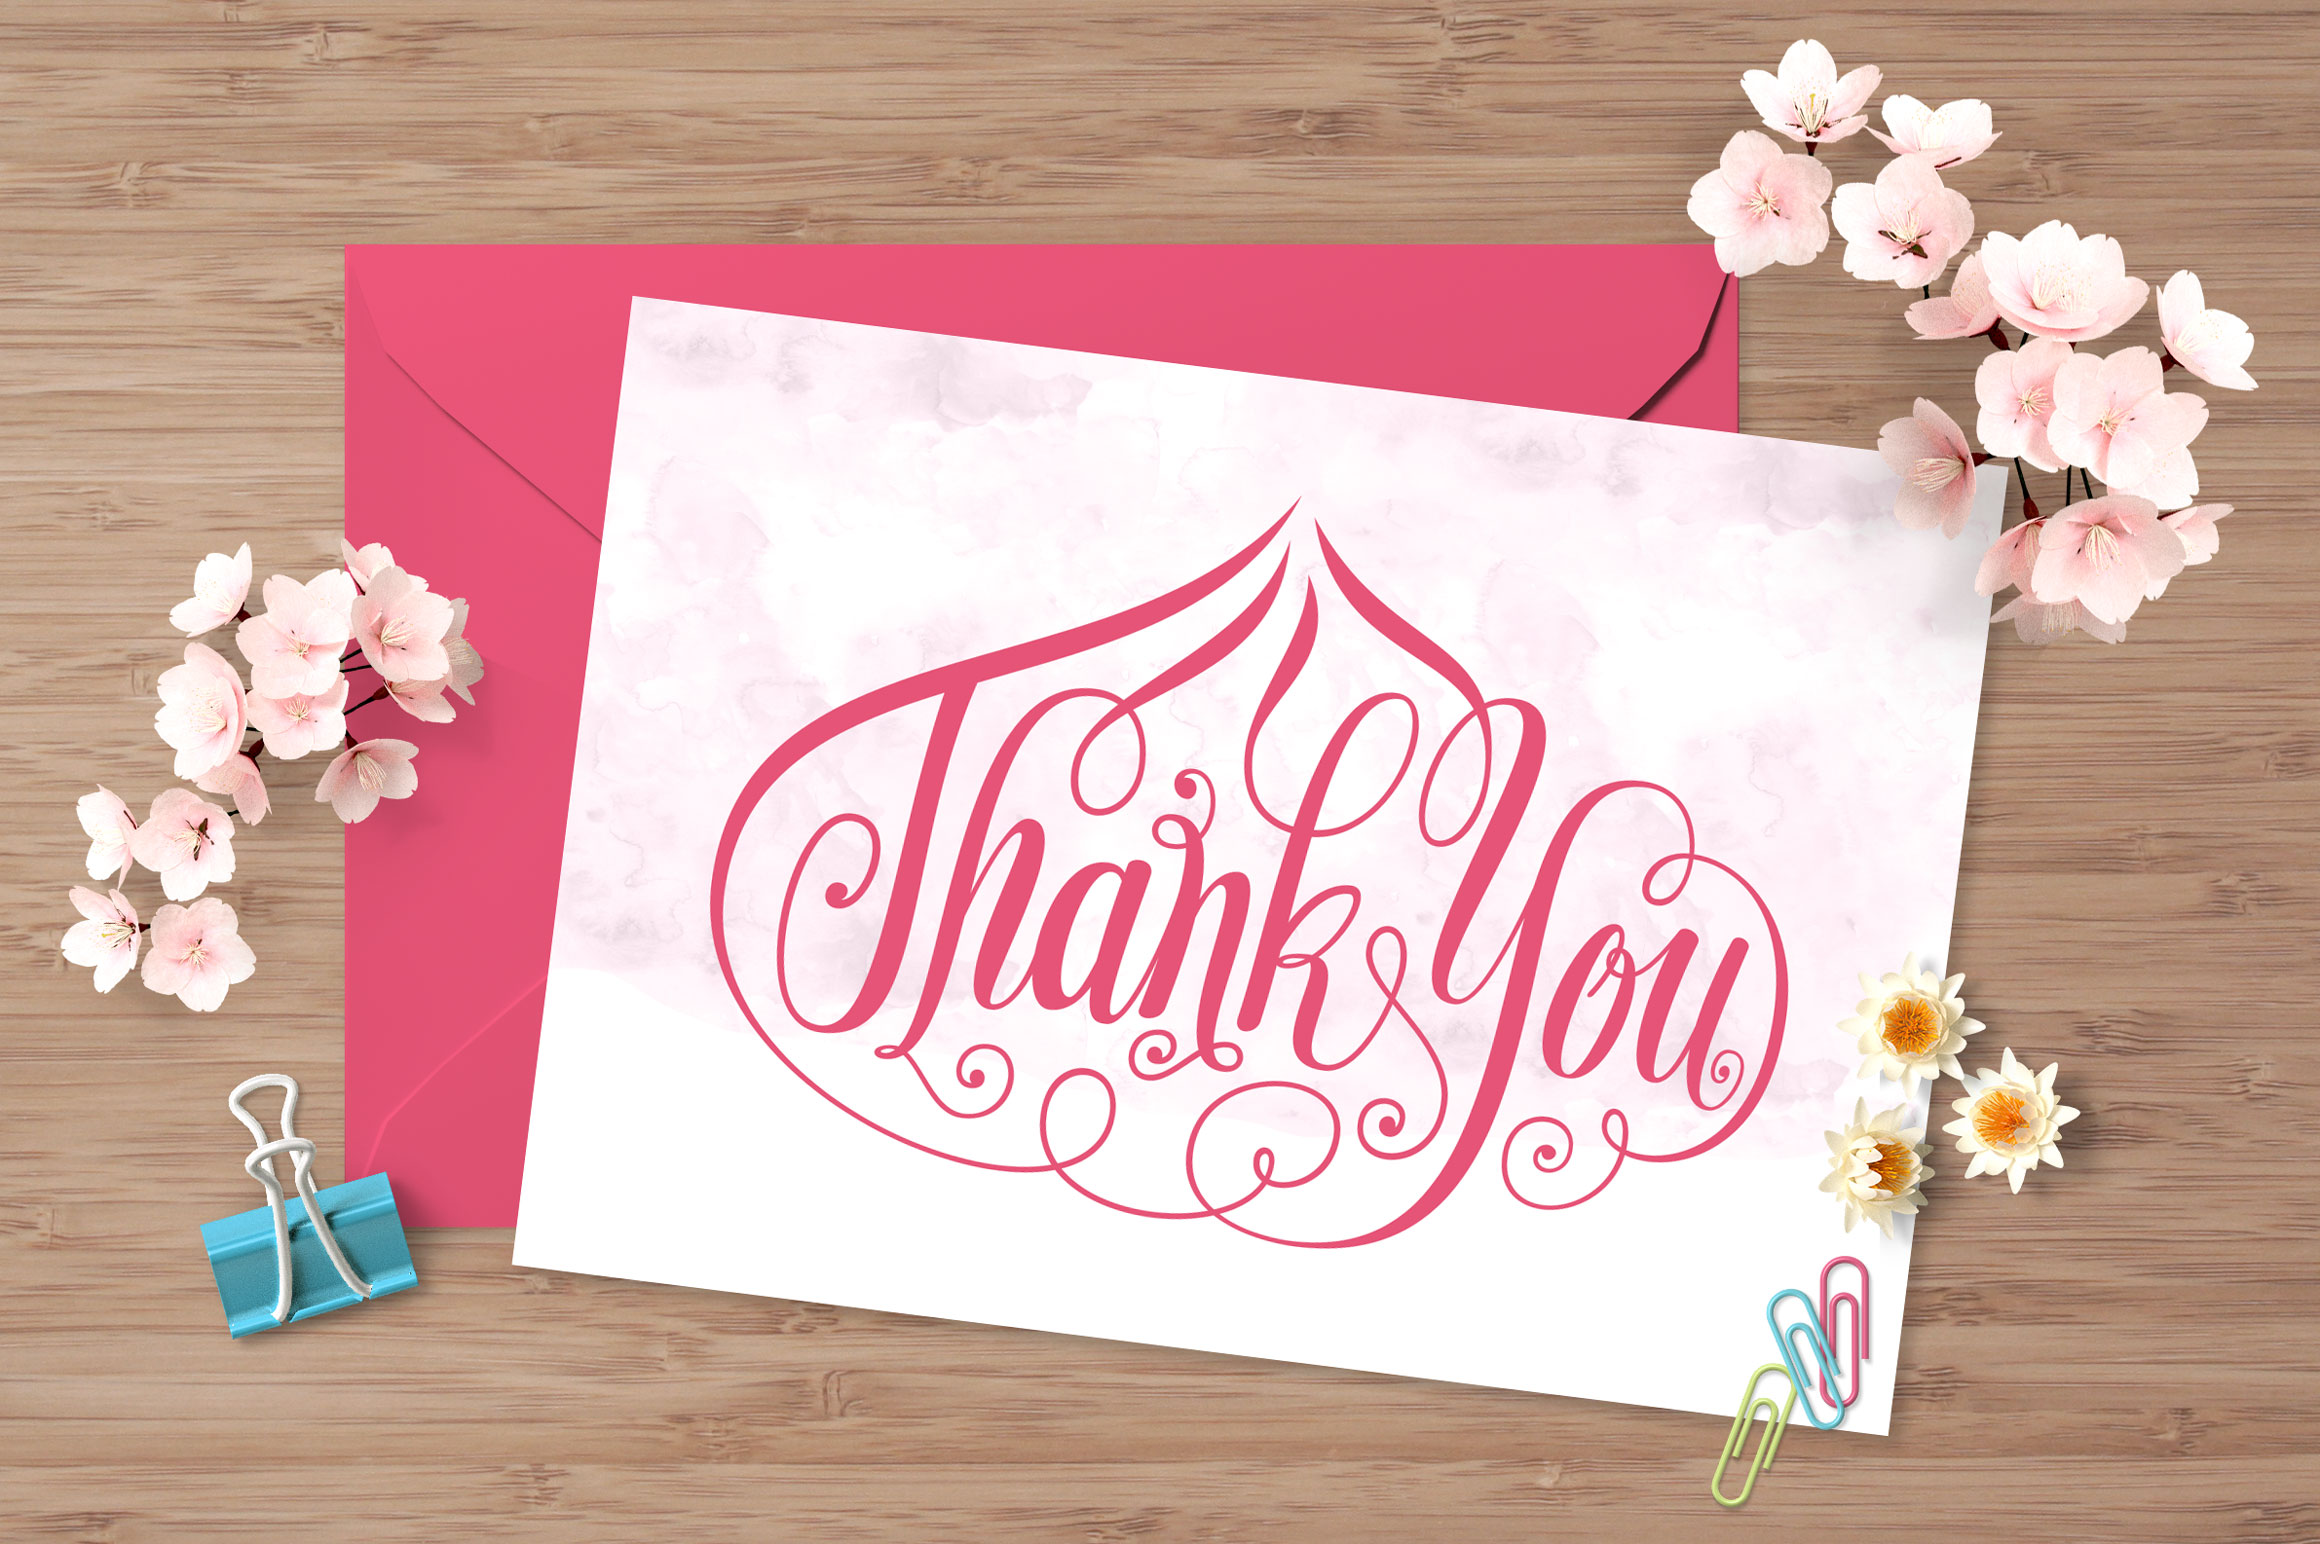 Thank-You-Onion-Shape-Lettering SVG example image 4